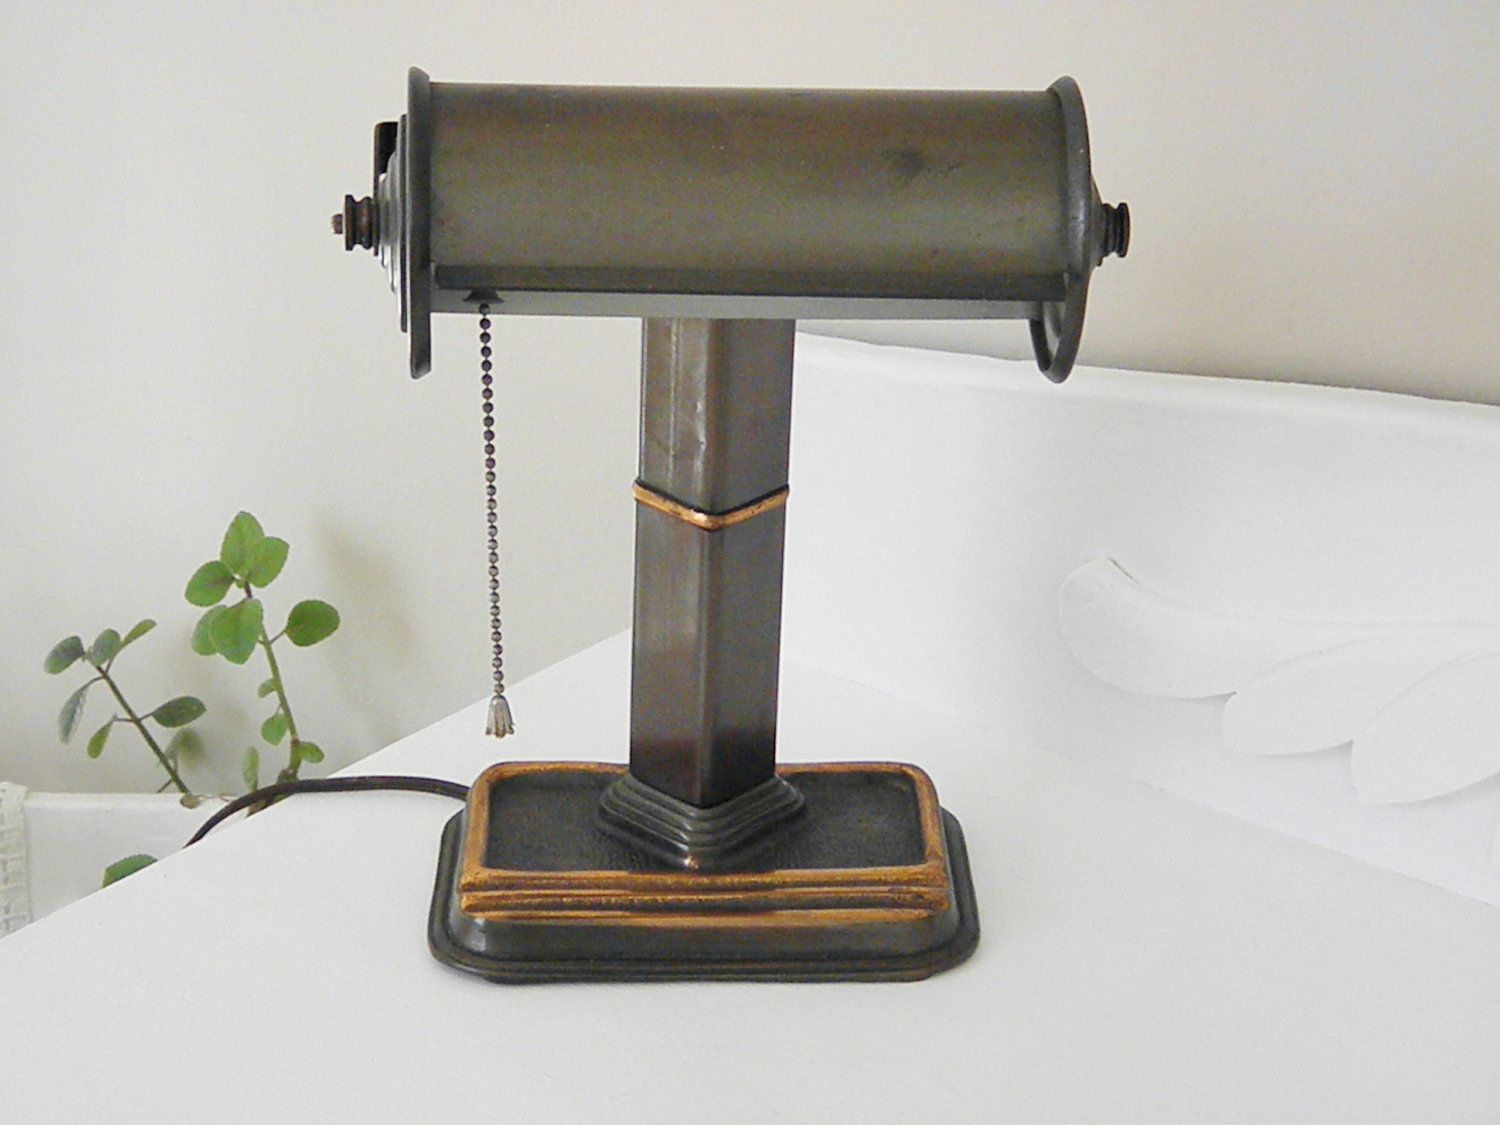 Vintage Art Deco Brass Desk Bankers Lamp - 18 Best ART DECO Desk Lamps Images On Pinterest Desk Lamp, Art